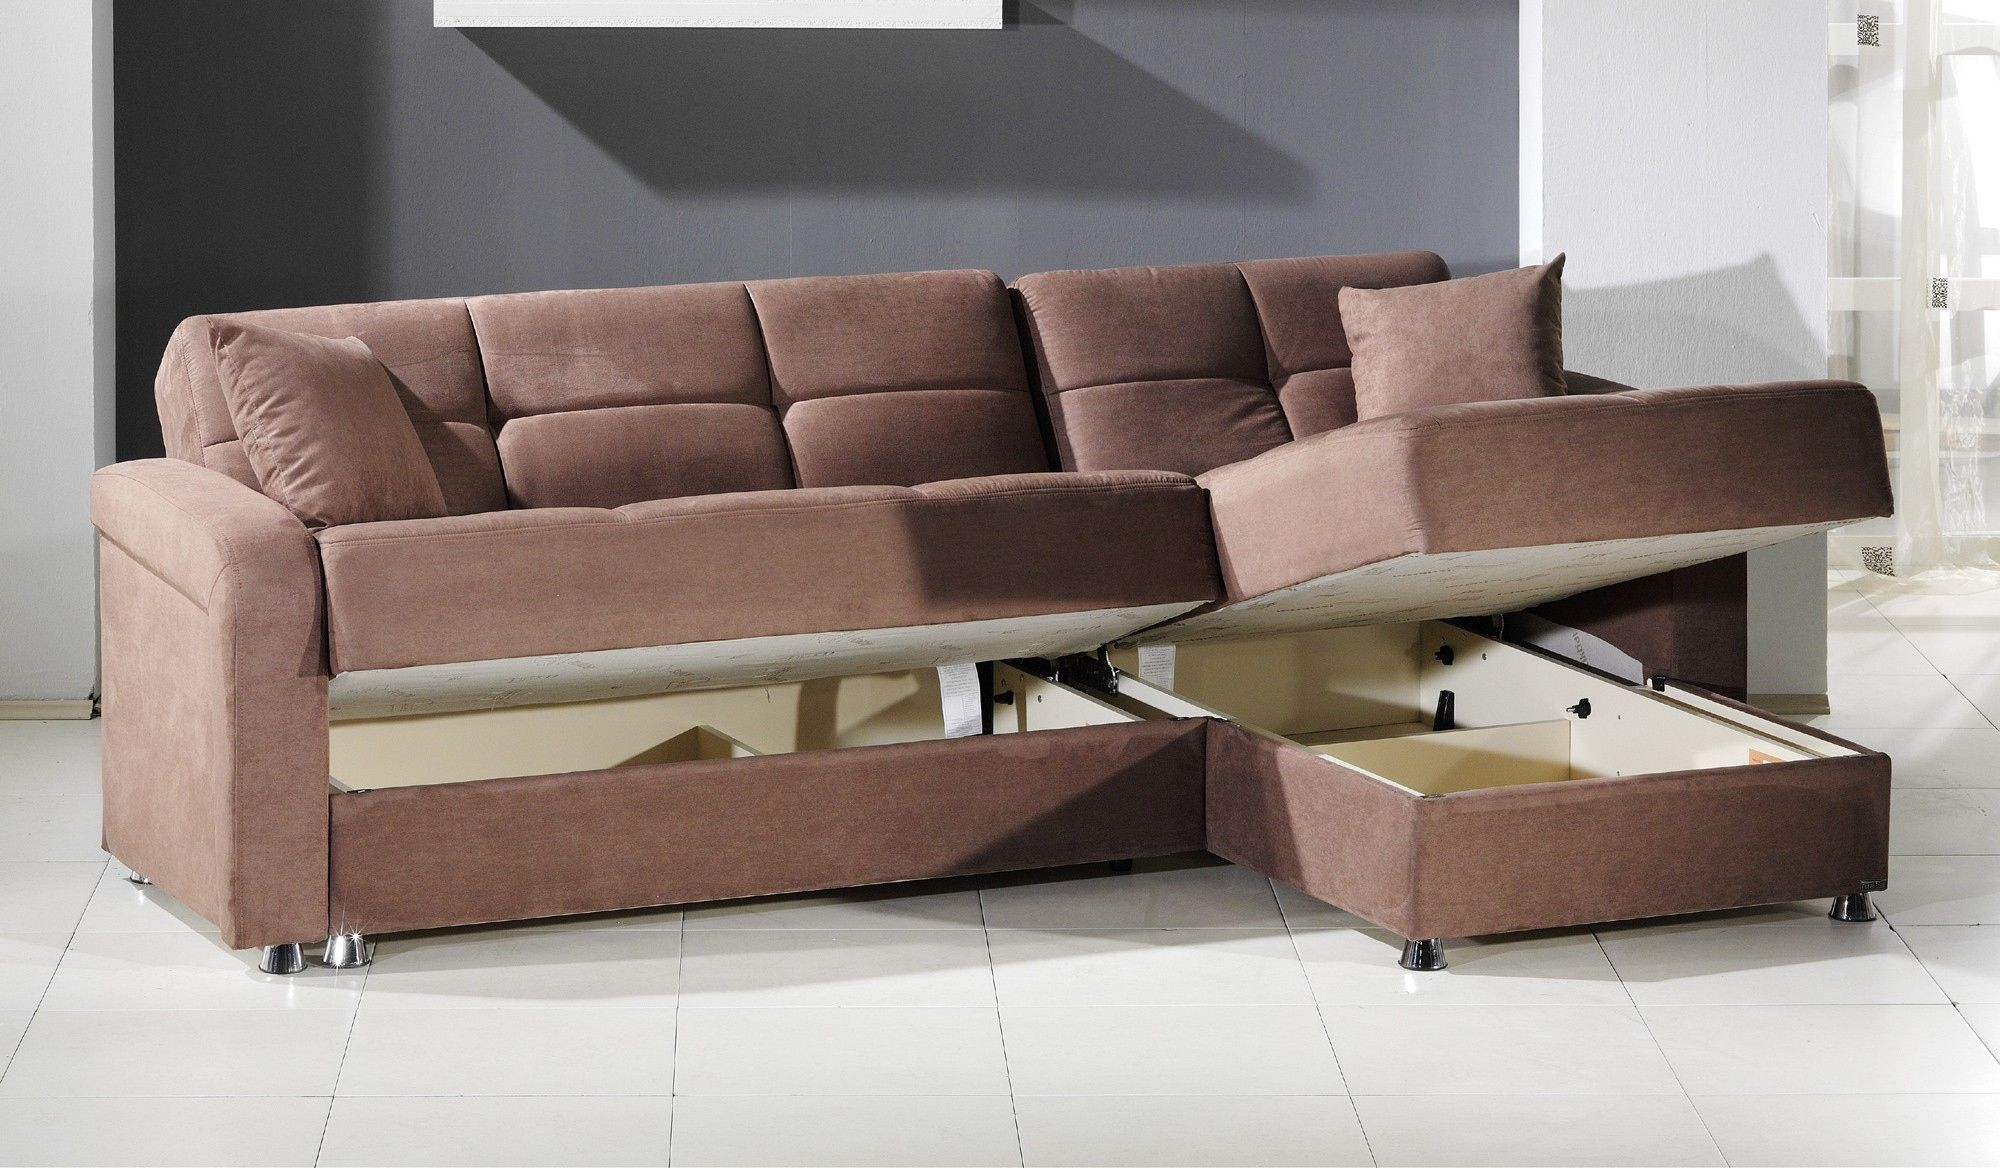 couch best size full u single with bed red sofa sleeper seater small sofas of chaise modern shaped modular sectional